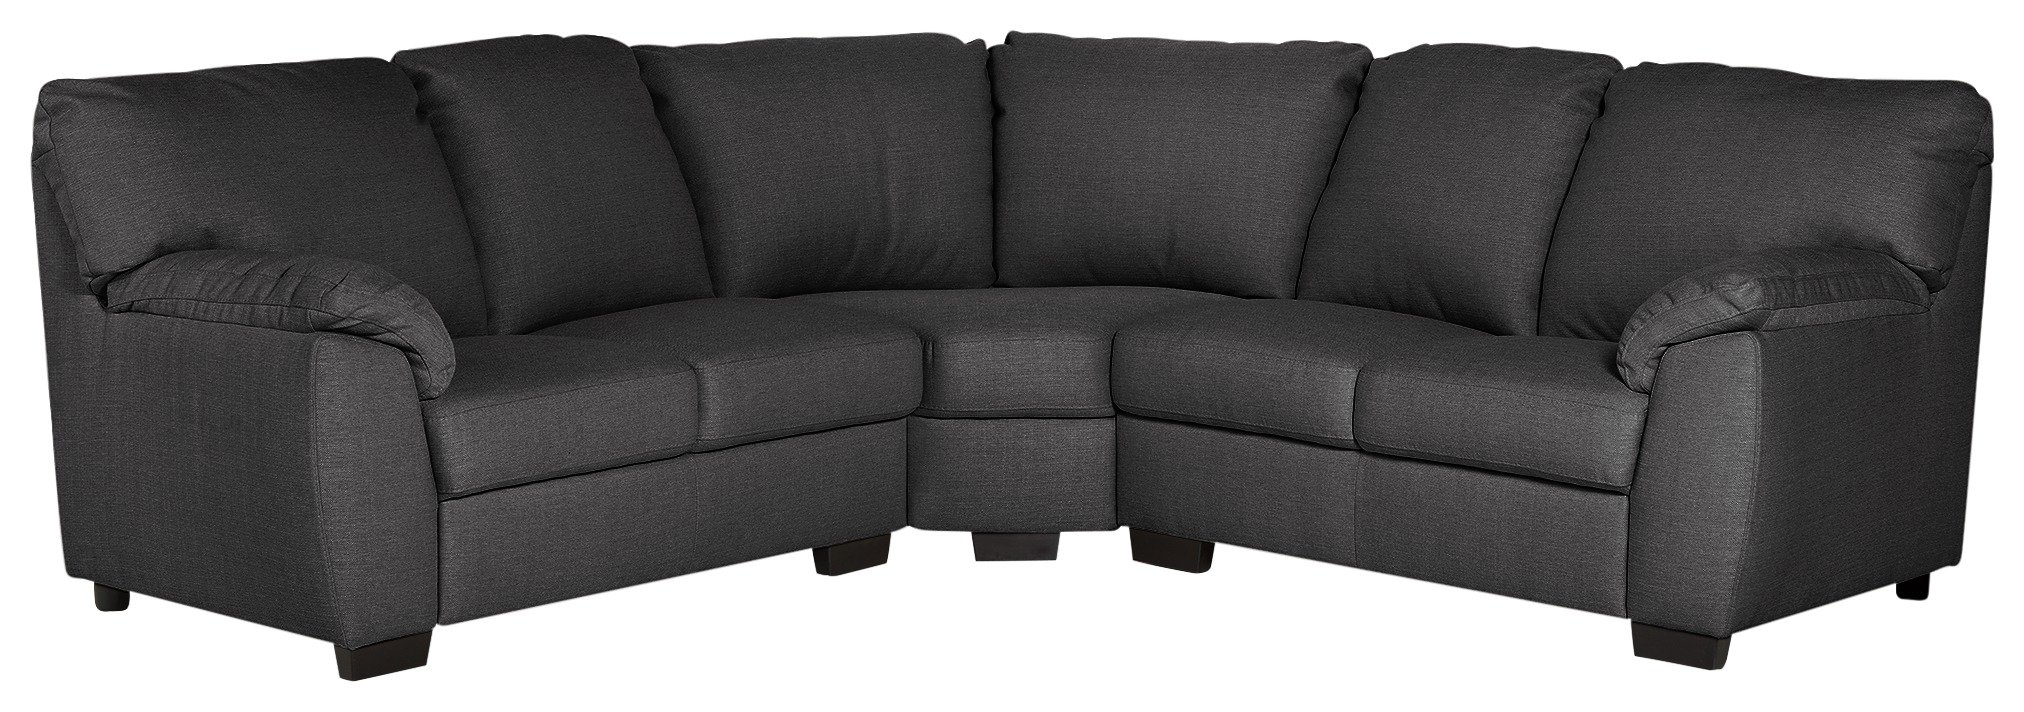 Argos Home Milano Corner Fabric Sofa - Charcoal